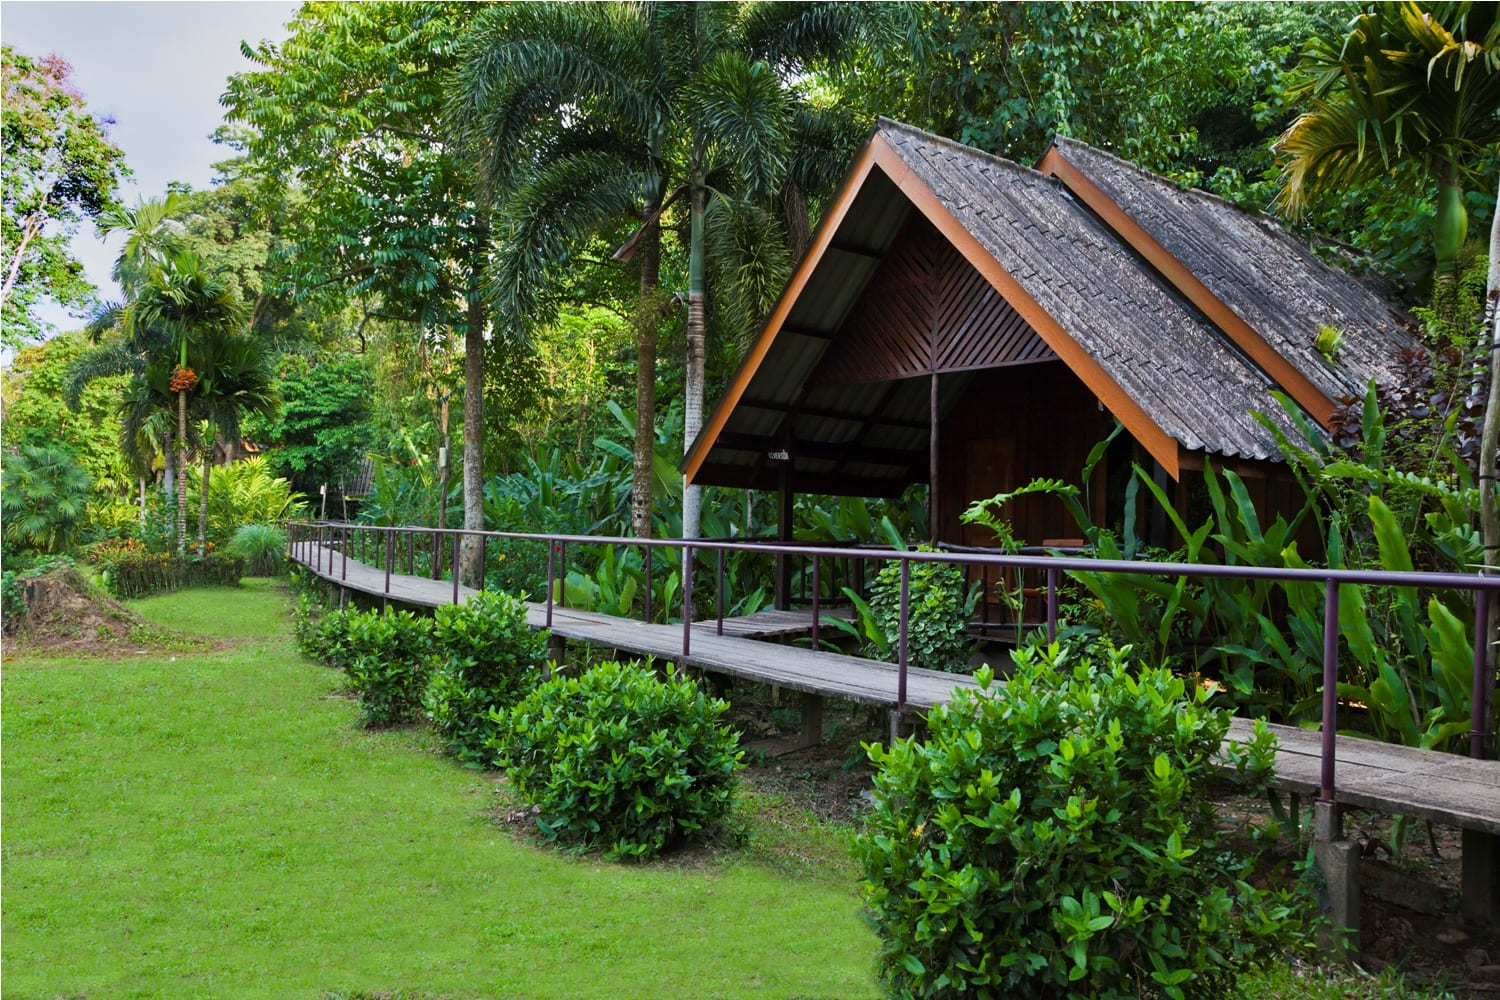 Khao sok riverside cottages accommodation and tours for Perfect cottage